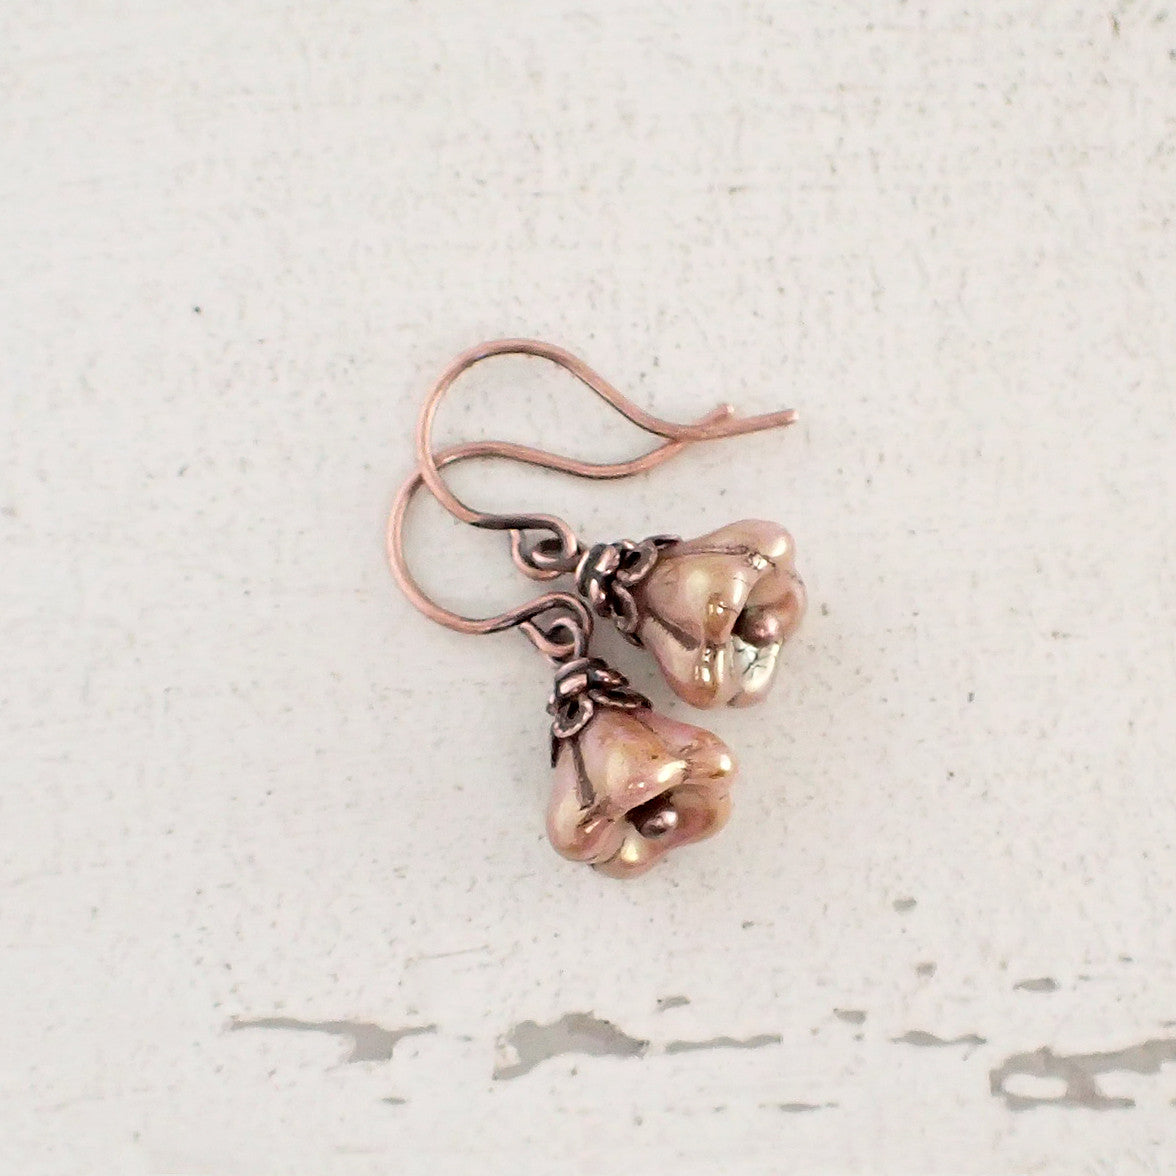 Rustic Dusty Pink And Copper Flower Earrings Ardent Hearts Designs